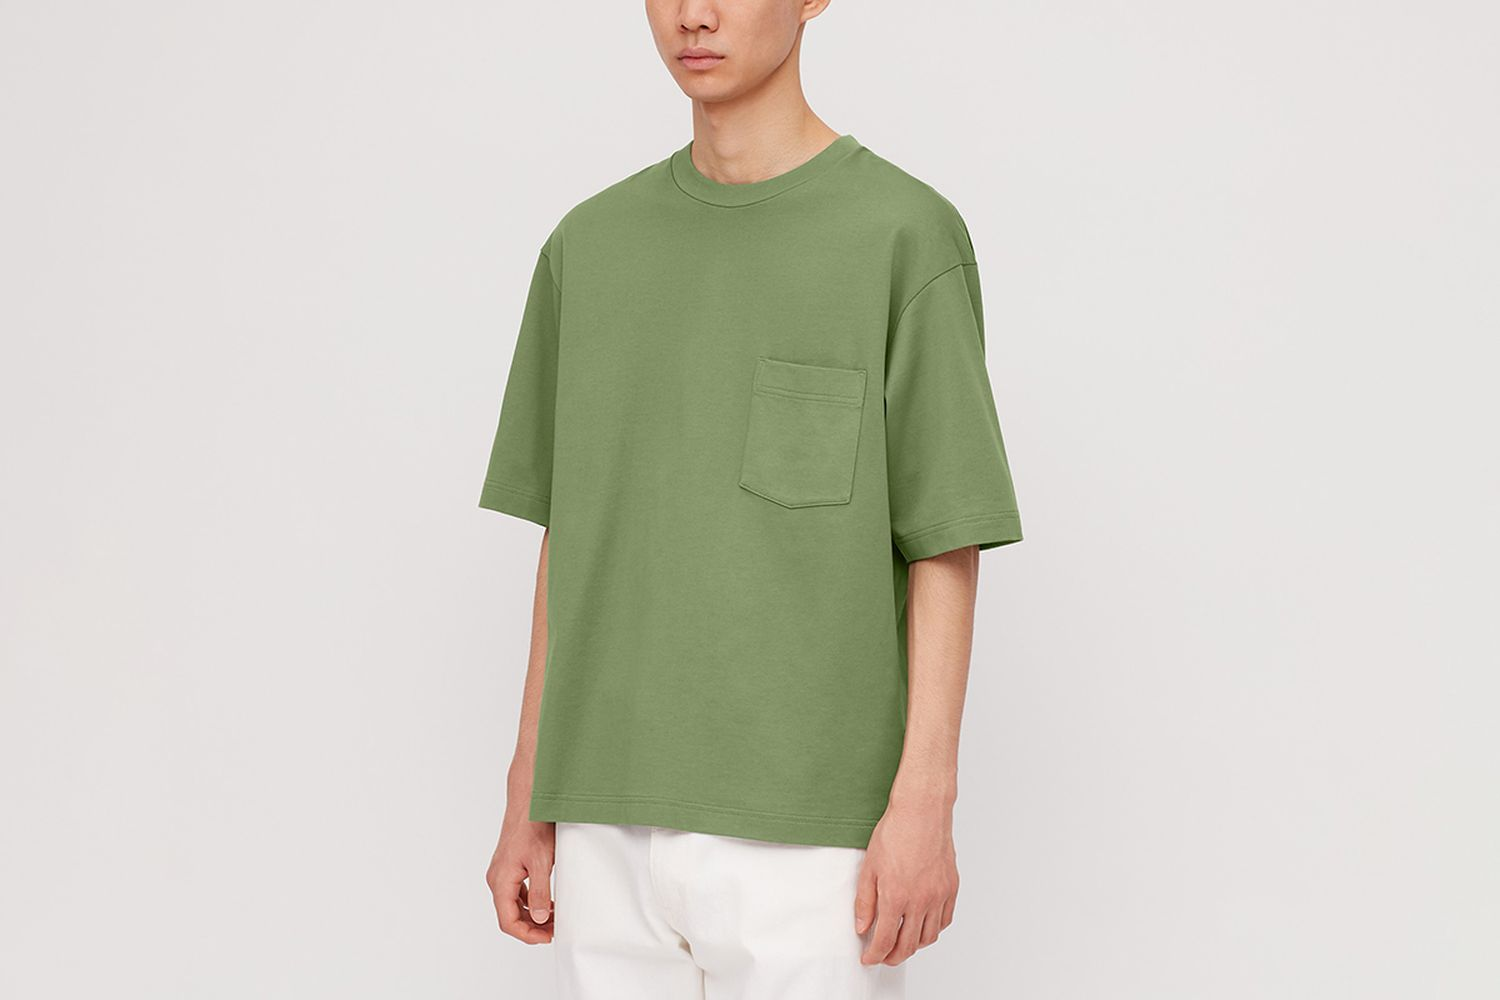 Oversized Crew Neck Short-Sleeve T-Shirt